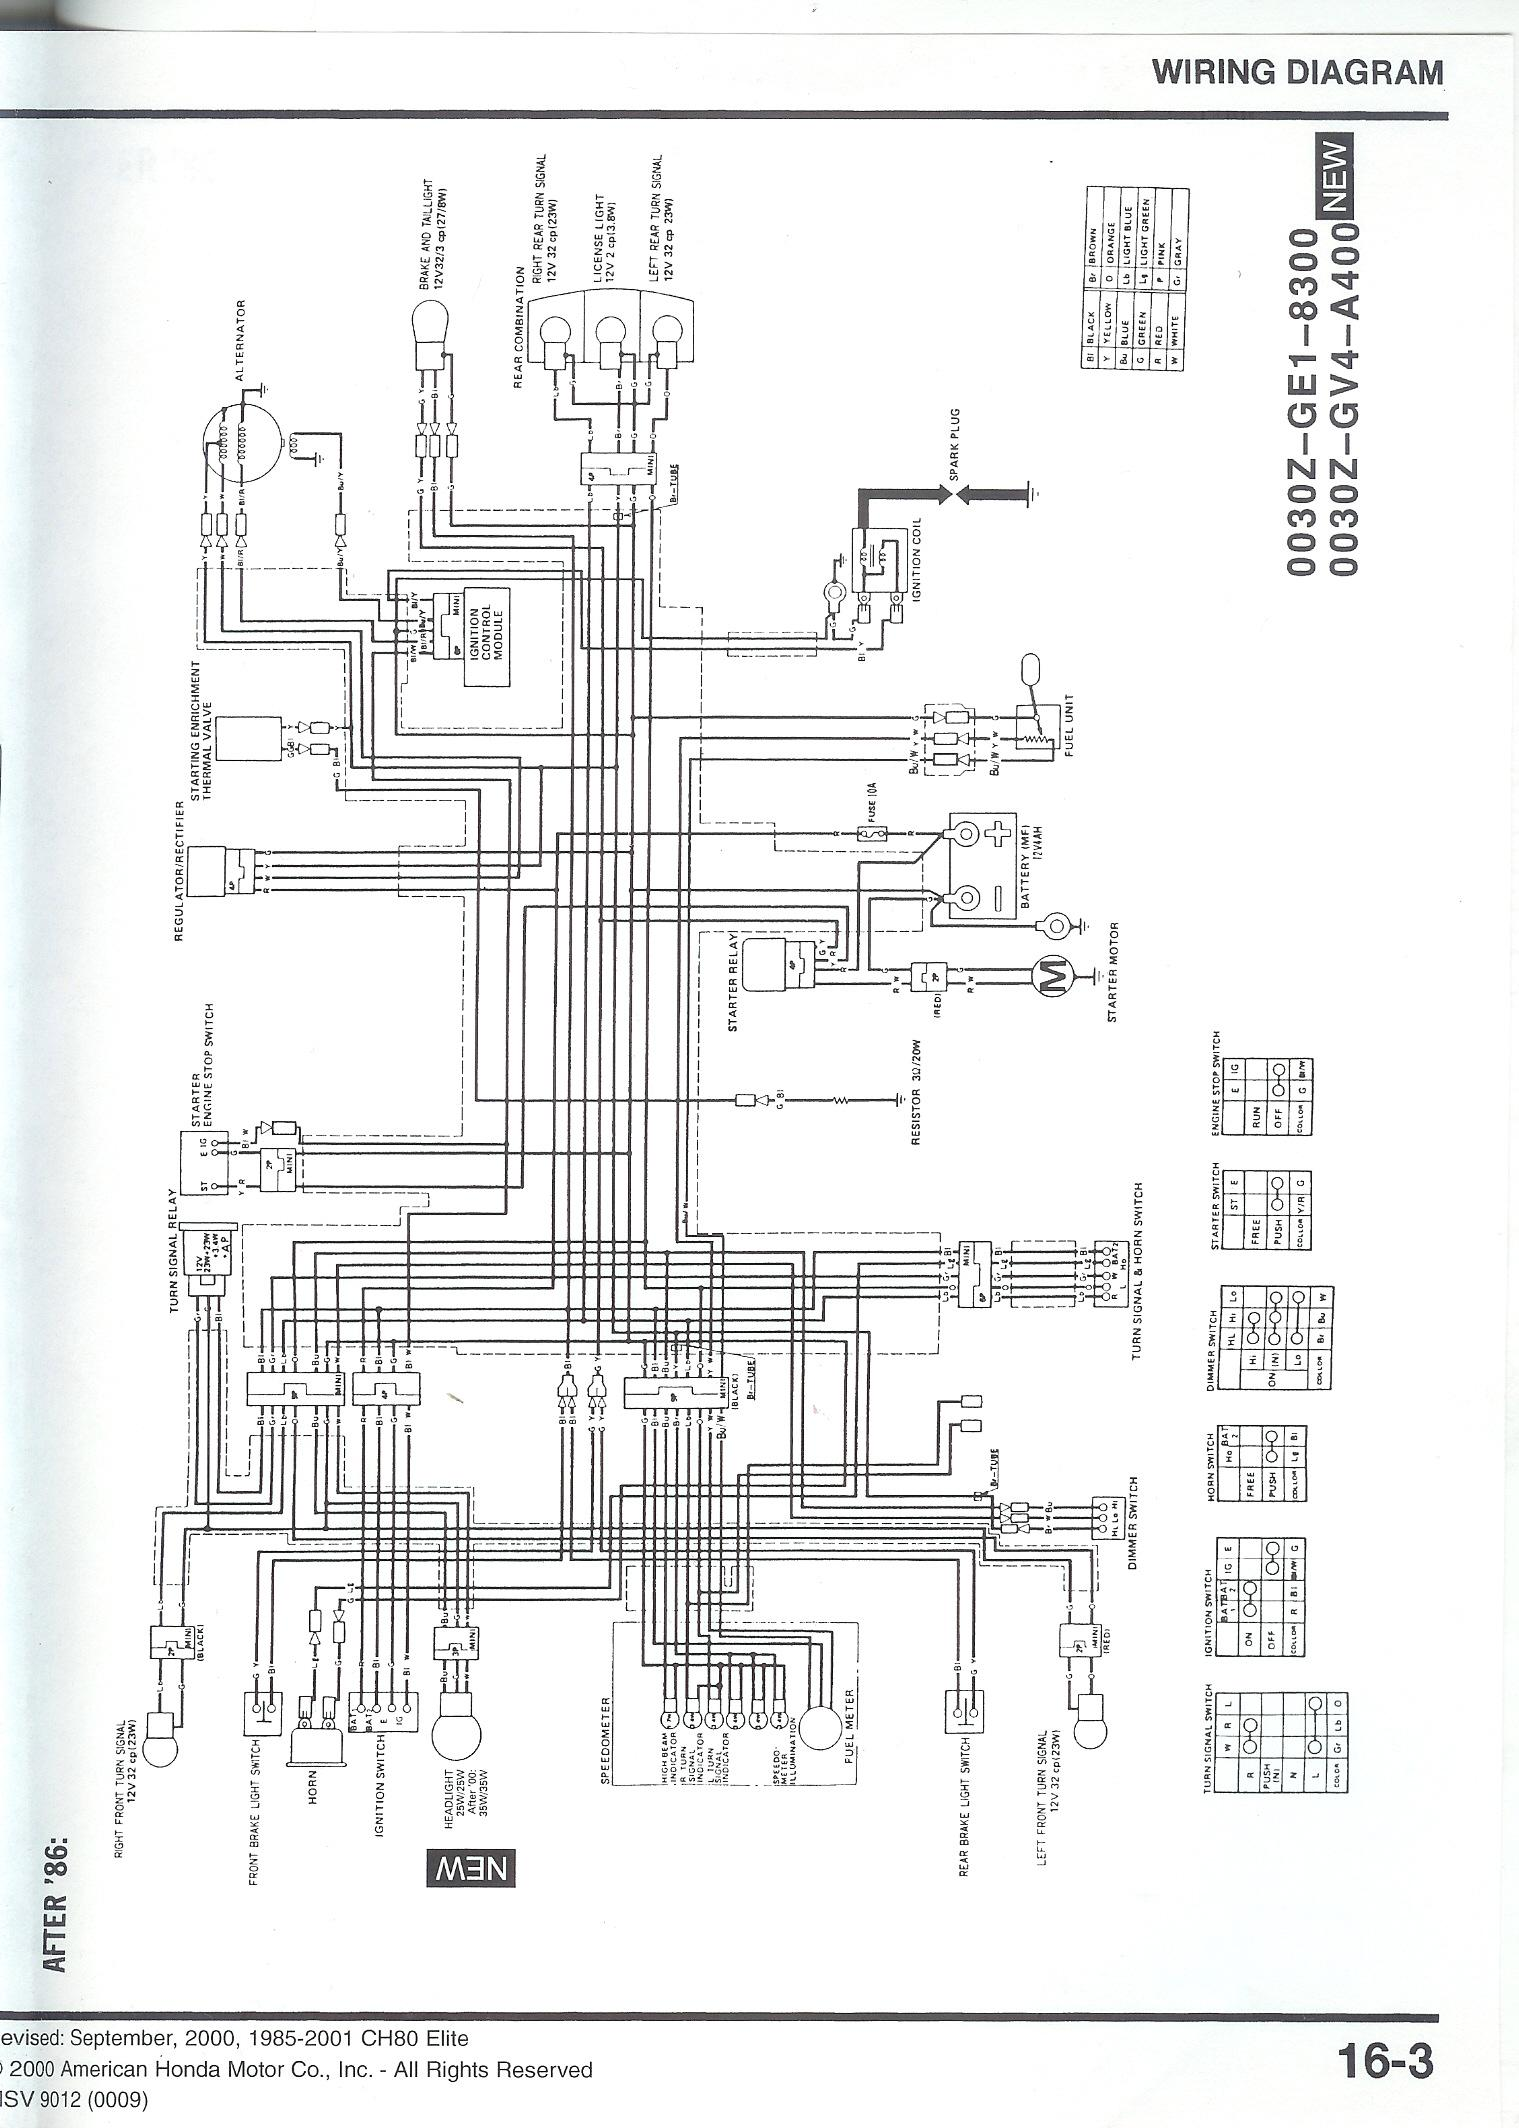 Wiring Diagram Honda Scooter : Honda ch wiring diagram get free image about